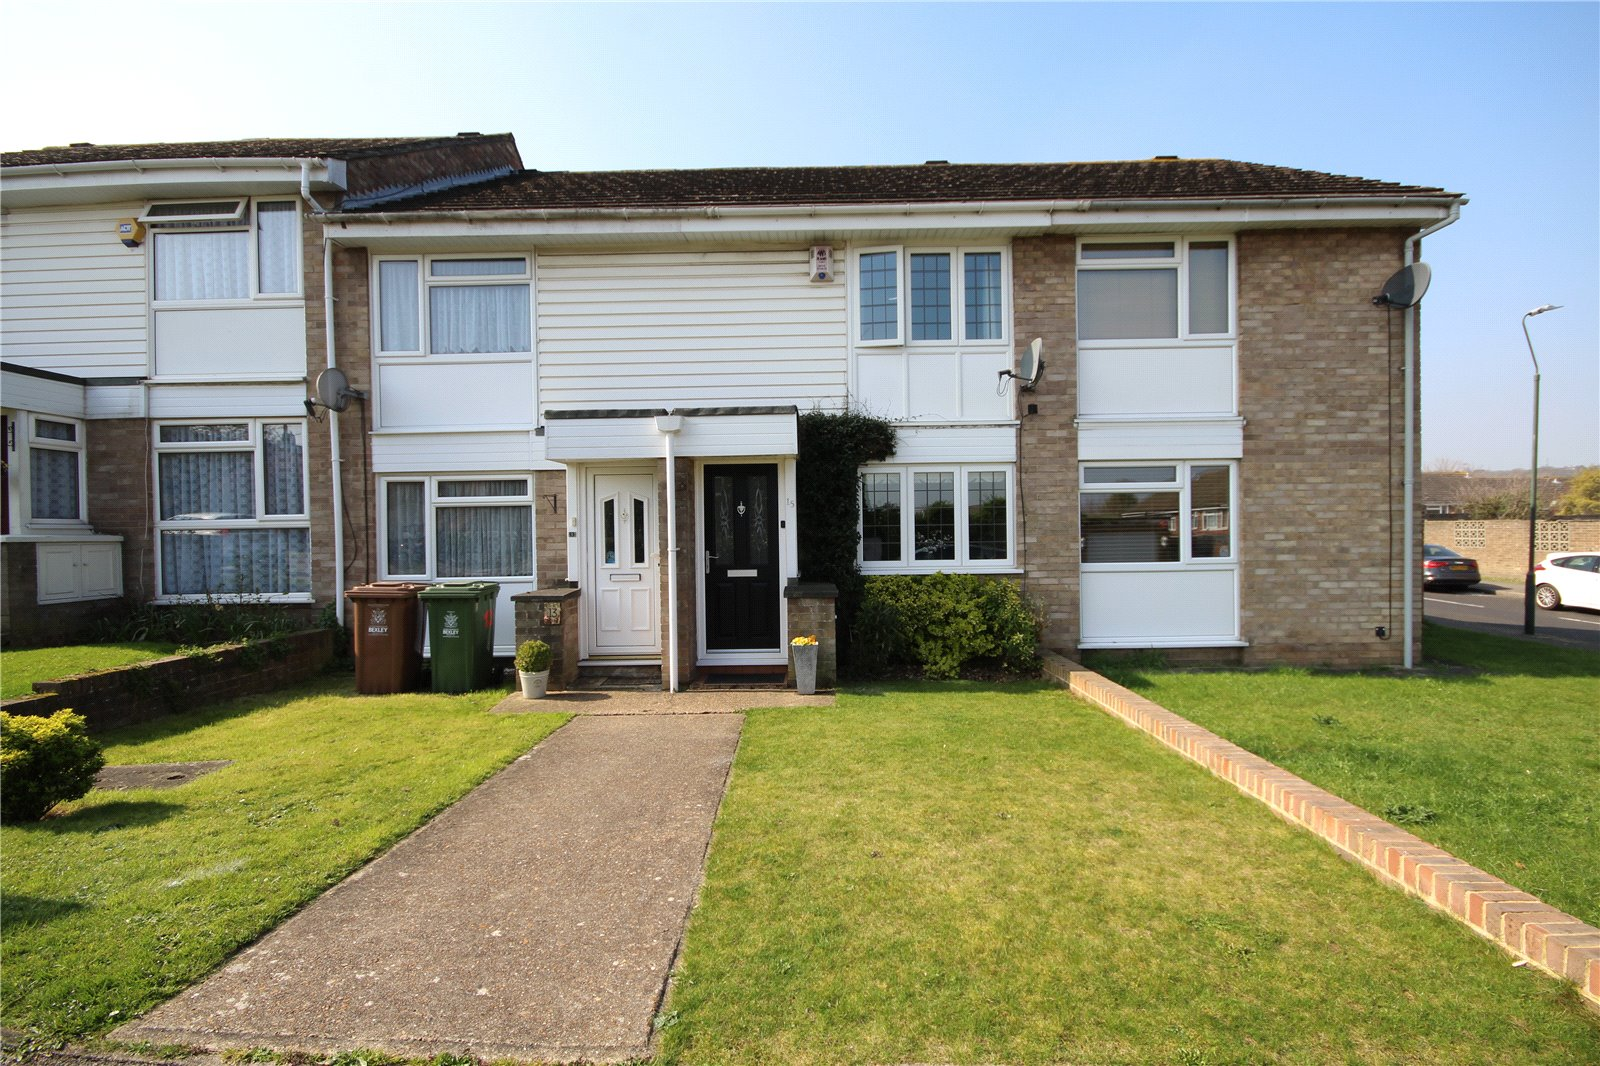 Shelley Drive, Welling, Kent, DA16